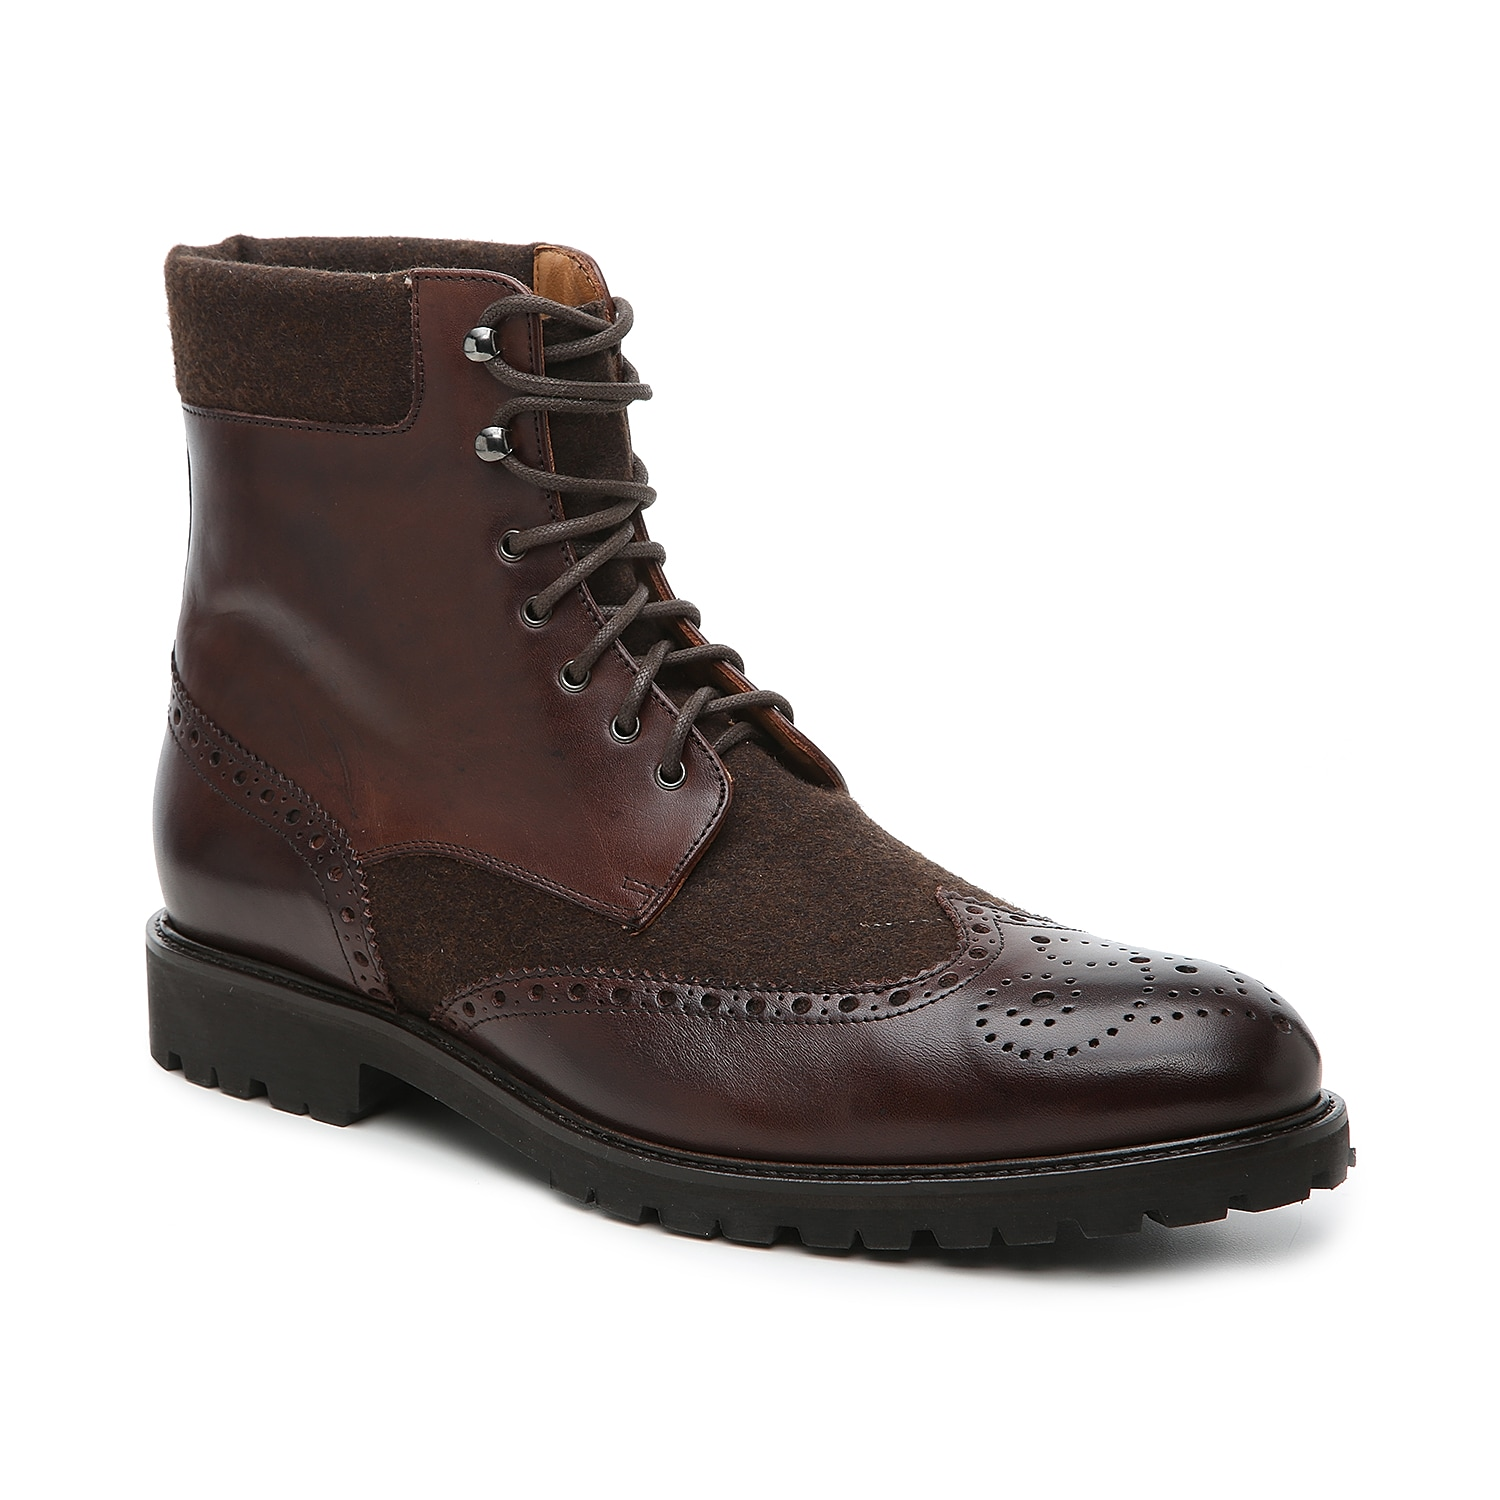 Handsome and stylish, these two-tone boots from Mercanti Fiorentini are sure to impress! These Italian-made lace-ups that are expertly designed with a wingtip toe, perforated brogue details, and a mixed upper of leather and tailored fabric.